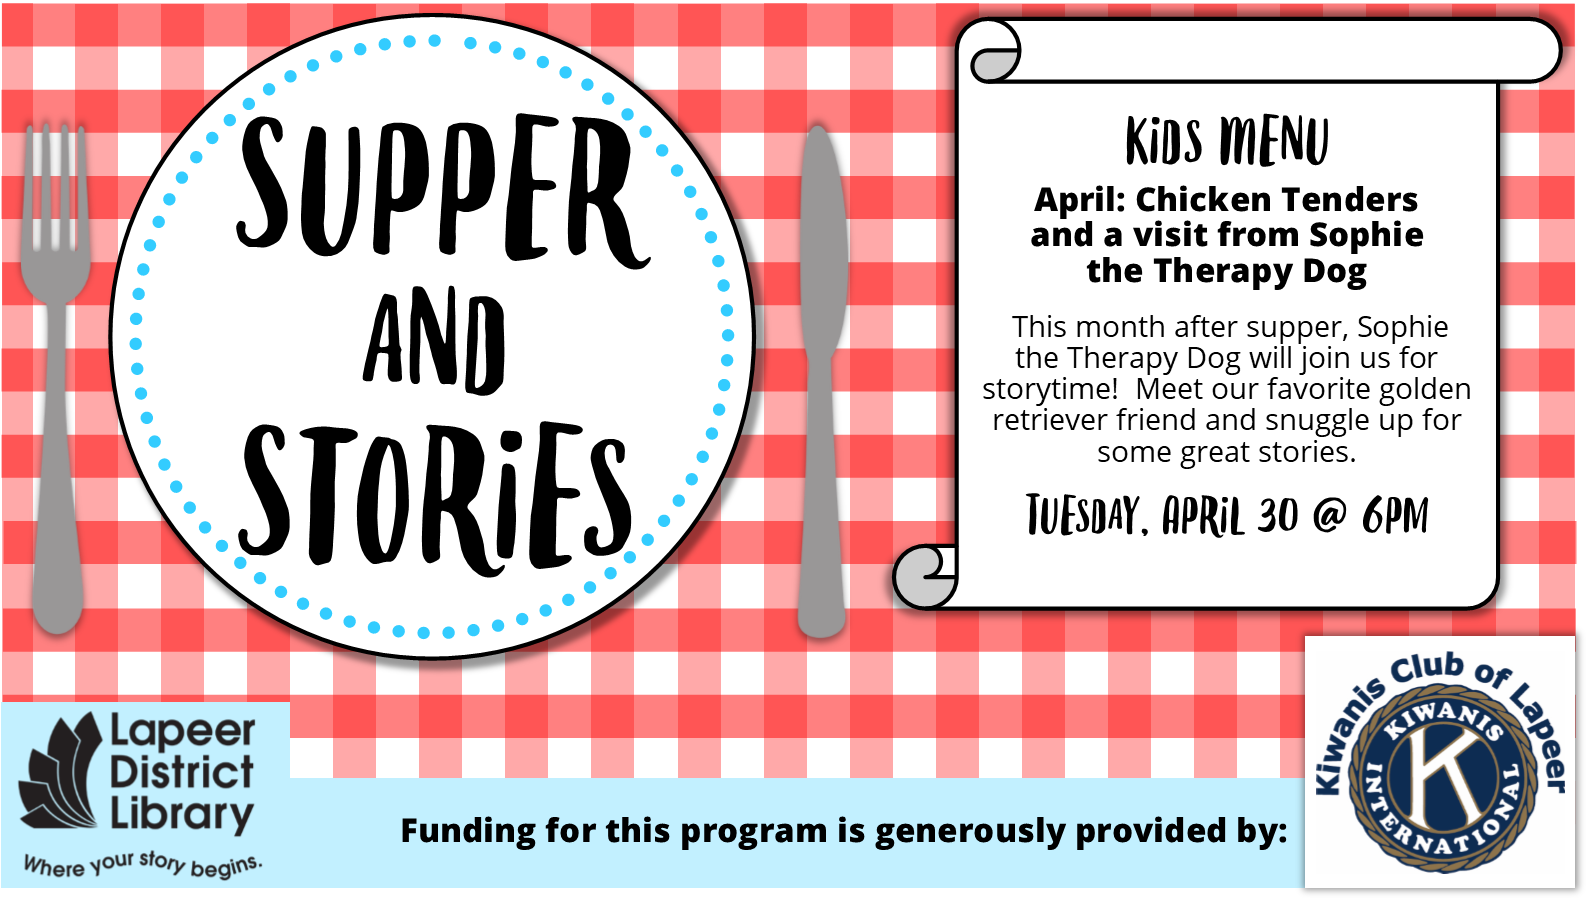 Supper & Stories - THEME: Sophie the Therapy Dog